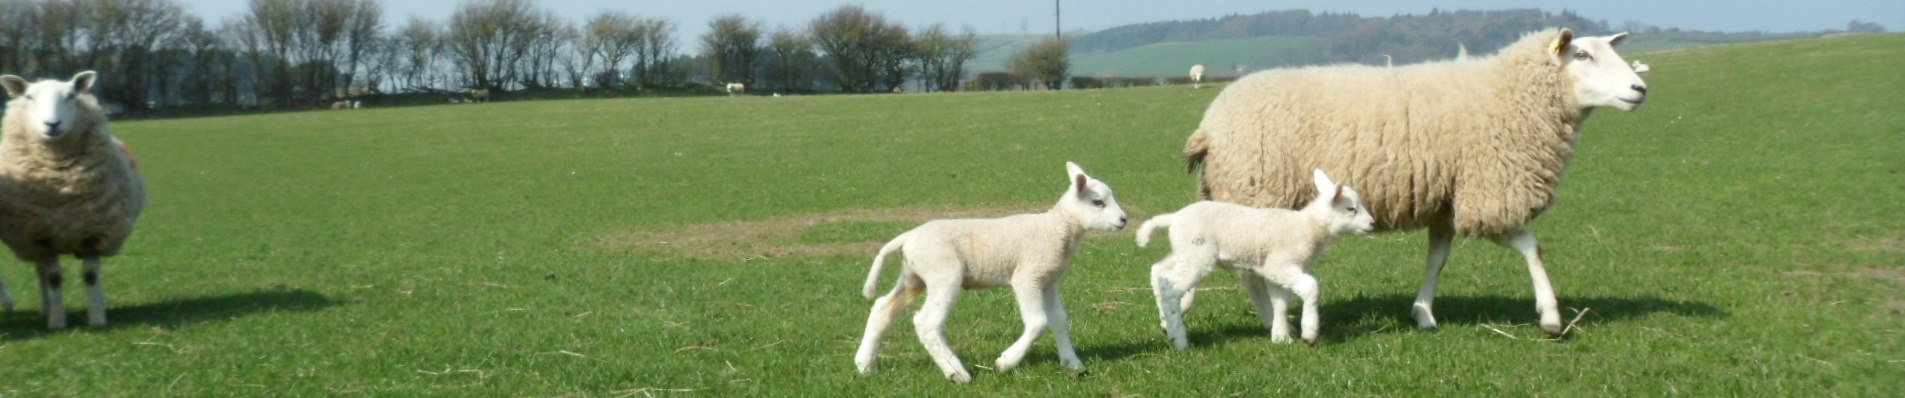 Young lambs in the fields near Llanasa